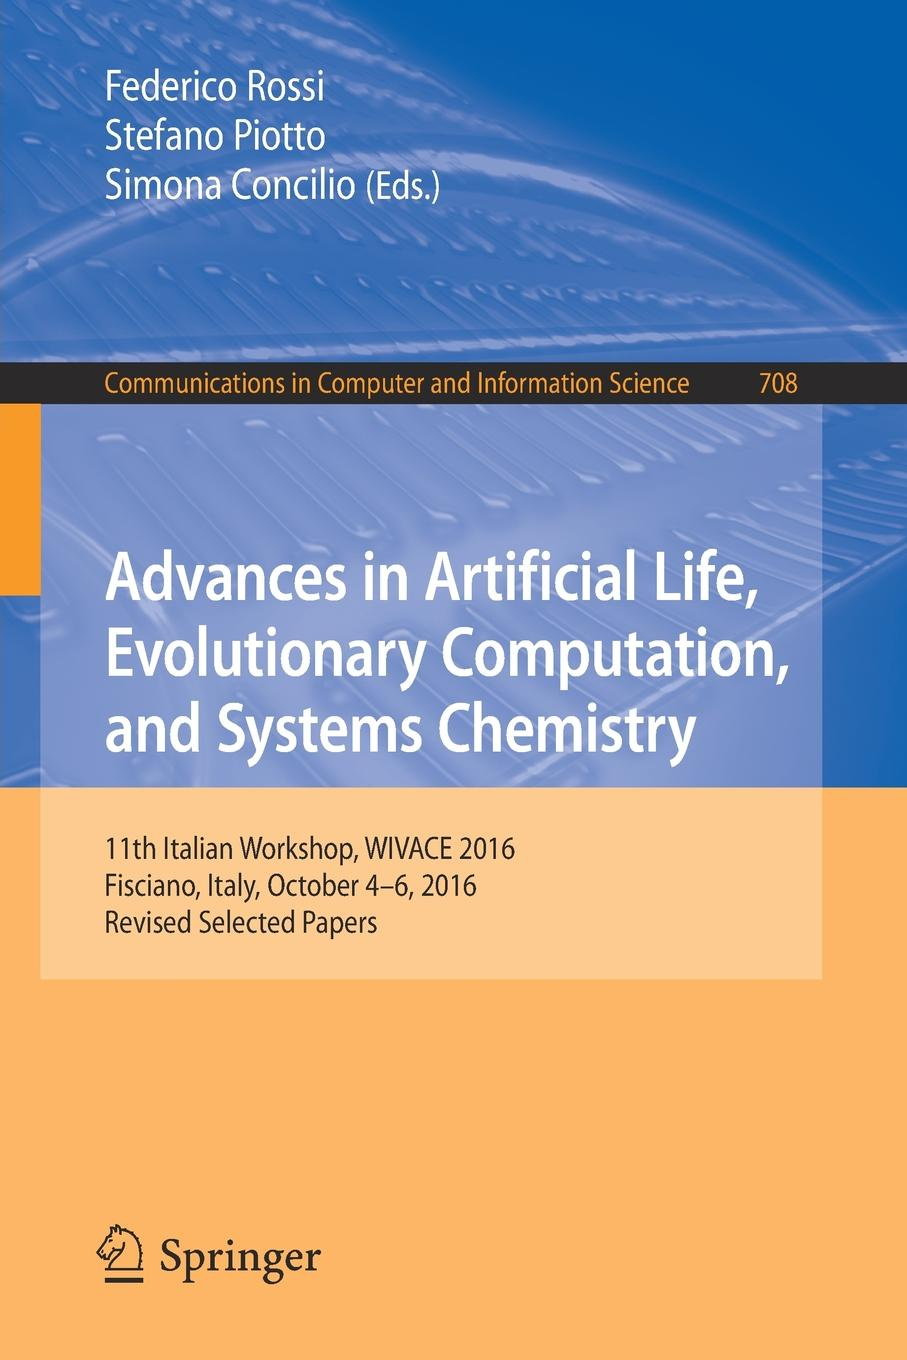 Advances in Artificial Life, Evolutionary Computation, and Systems Chemistry. 11th Italian Workshop, WIVACE 2016, Fisciano, Italy, October 4-6, 2016, Revised Selected Papers derong liu fundamentals of computational intelligence neural networks fuzzy systems and evolutionary computation